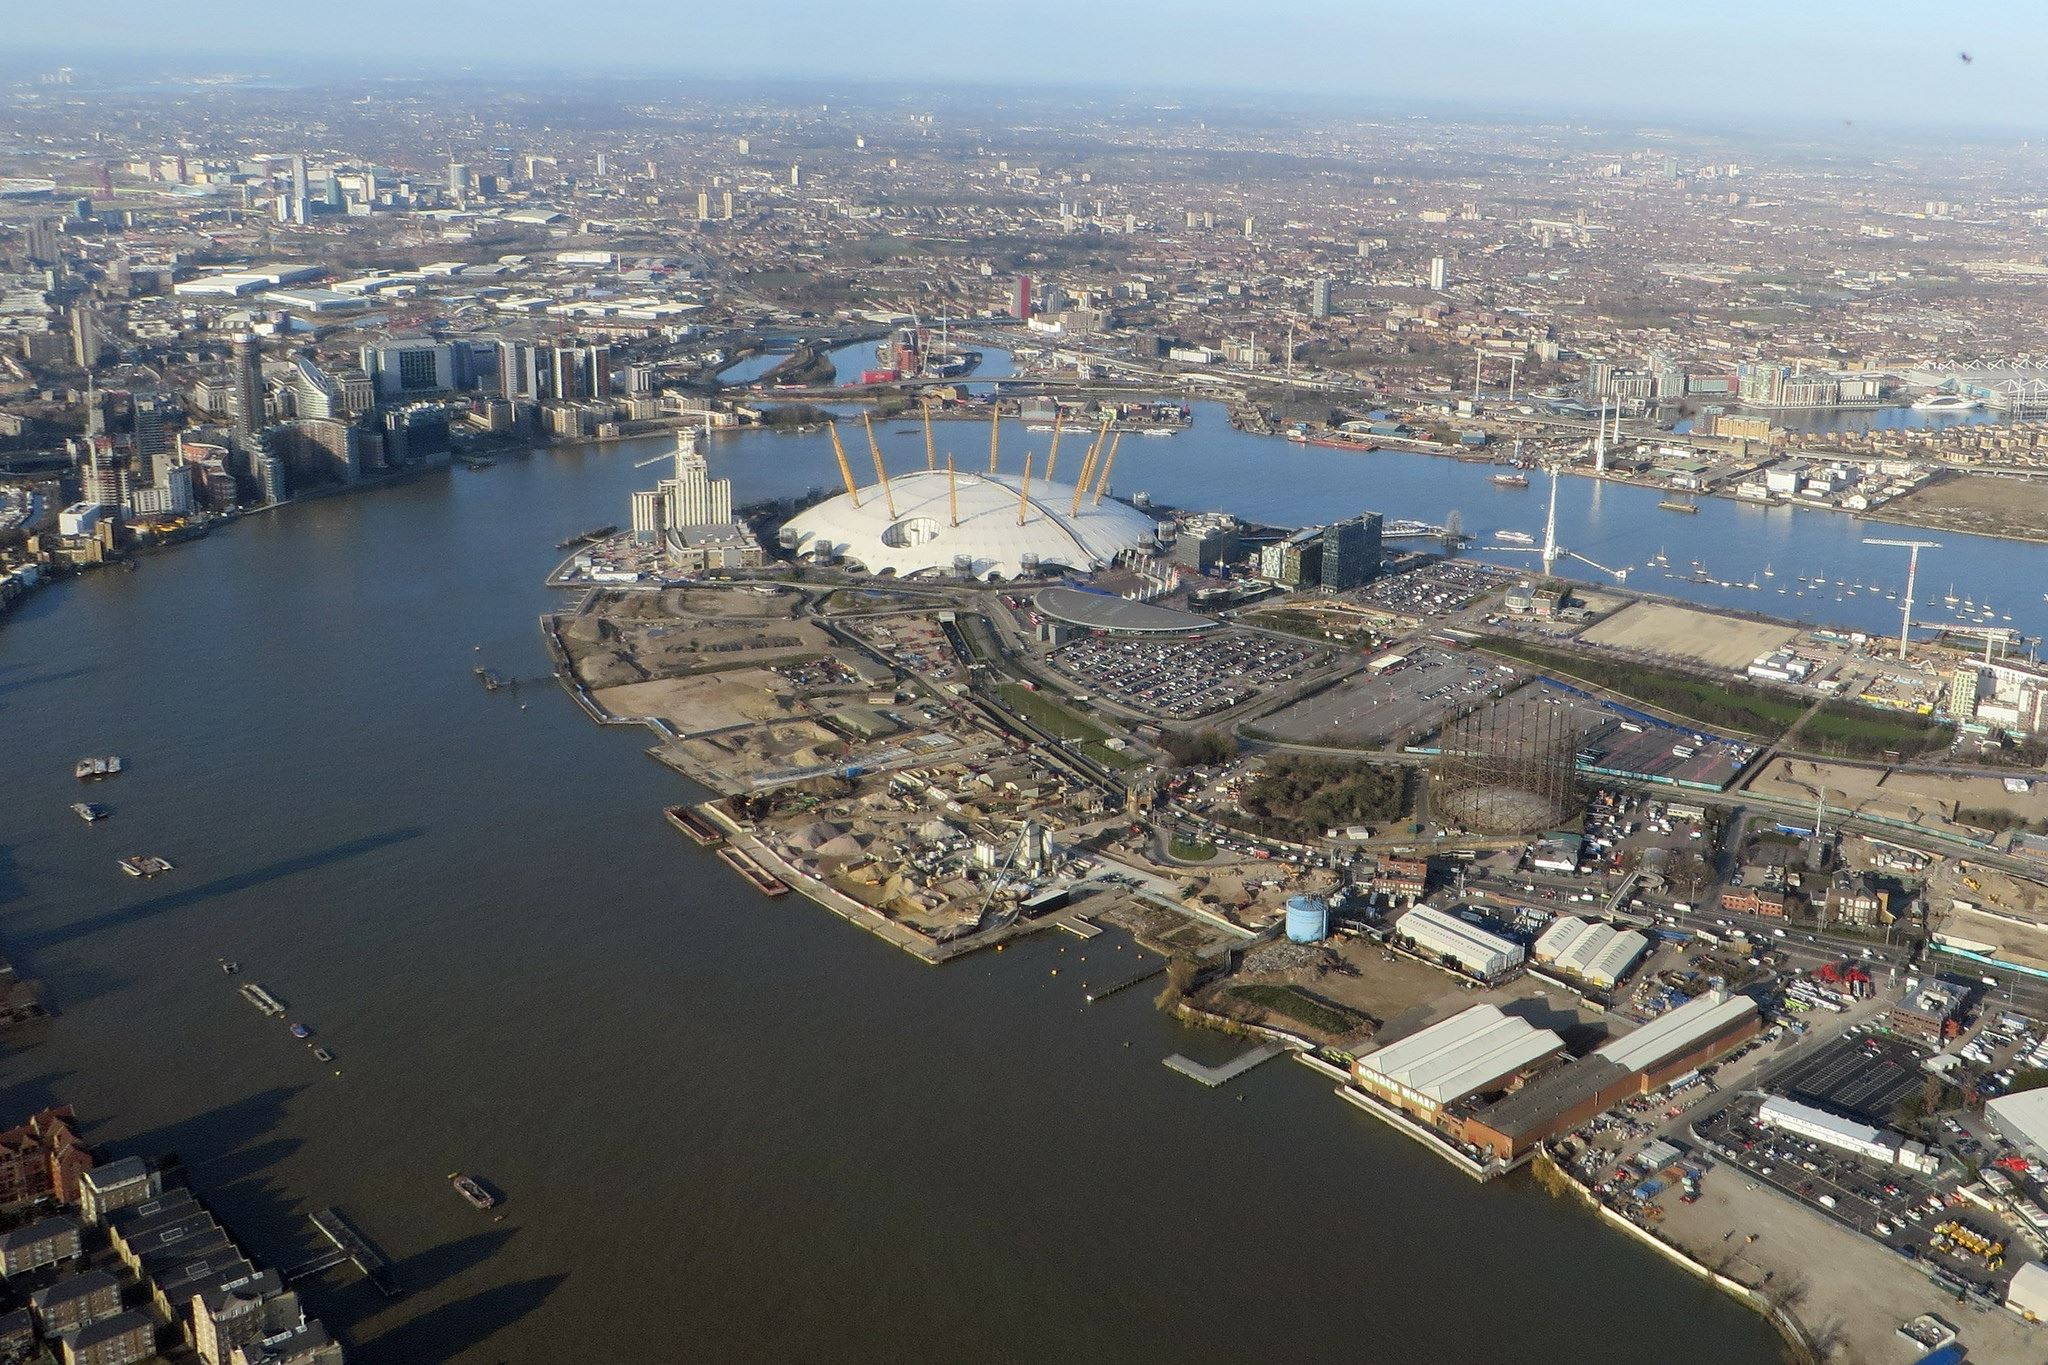 London mayor gives approval for over 12,600 new homes in Greenwich